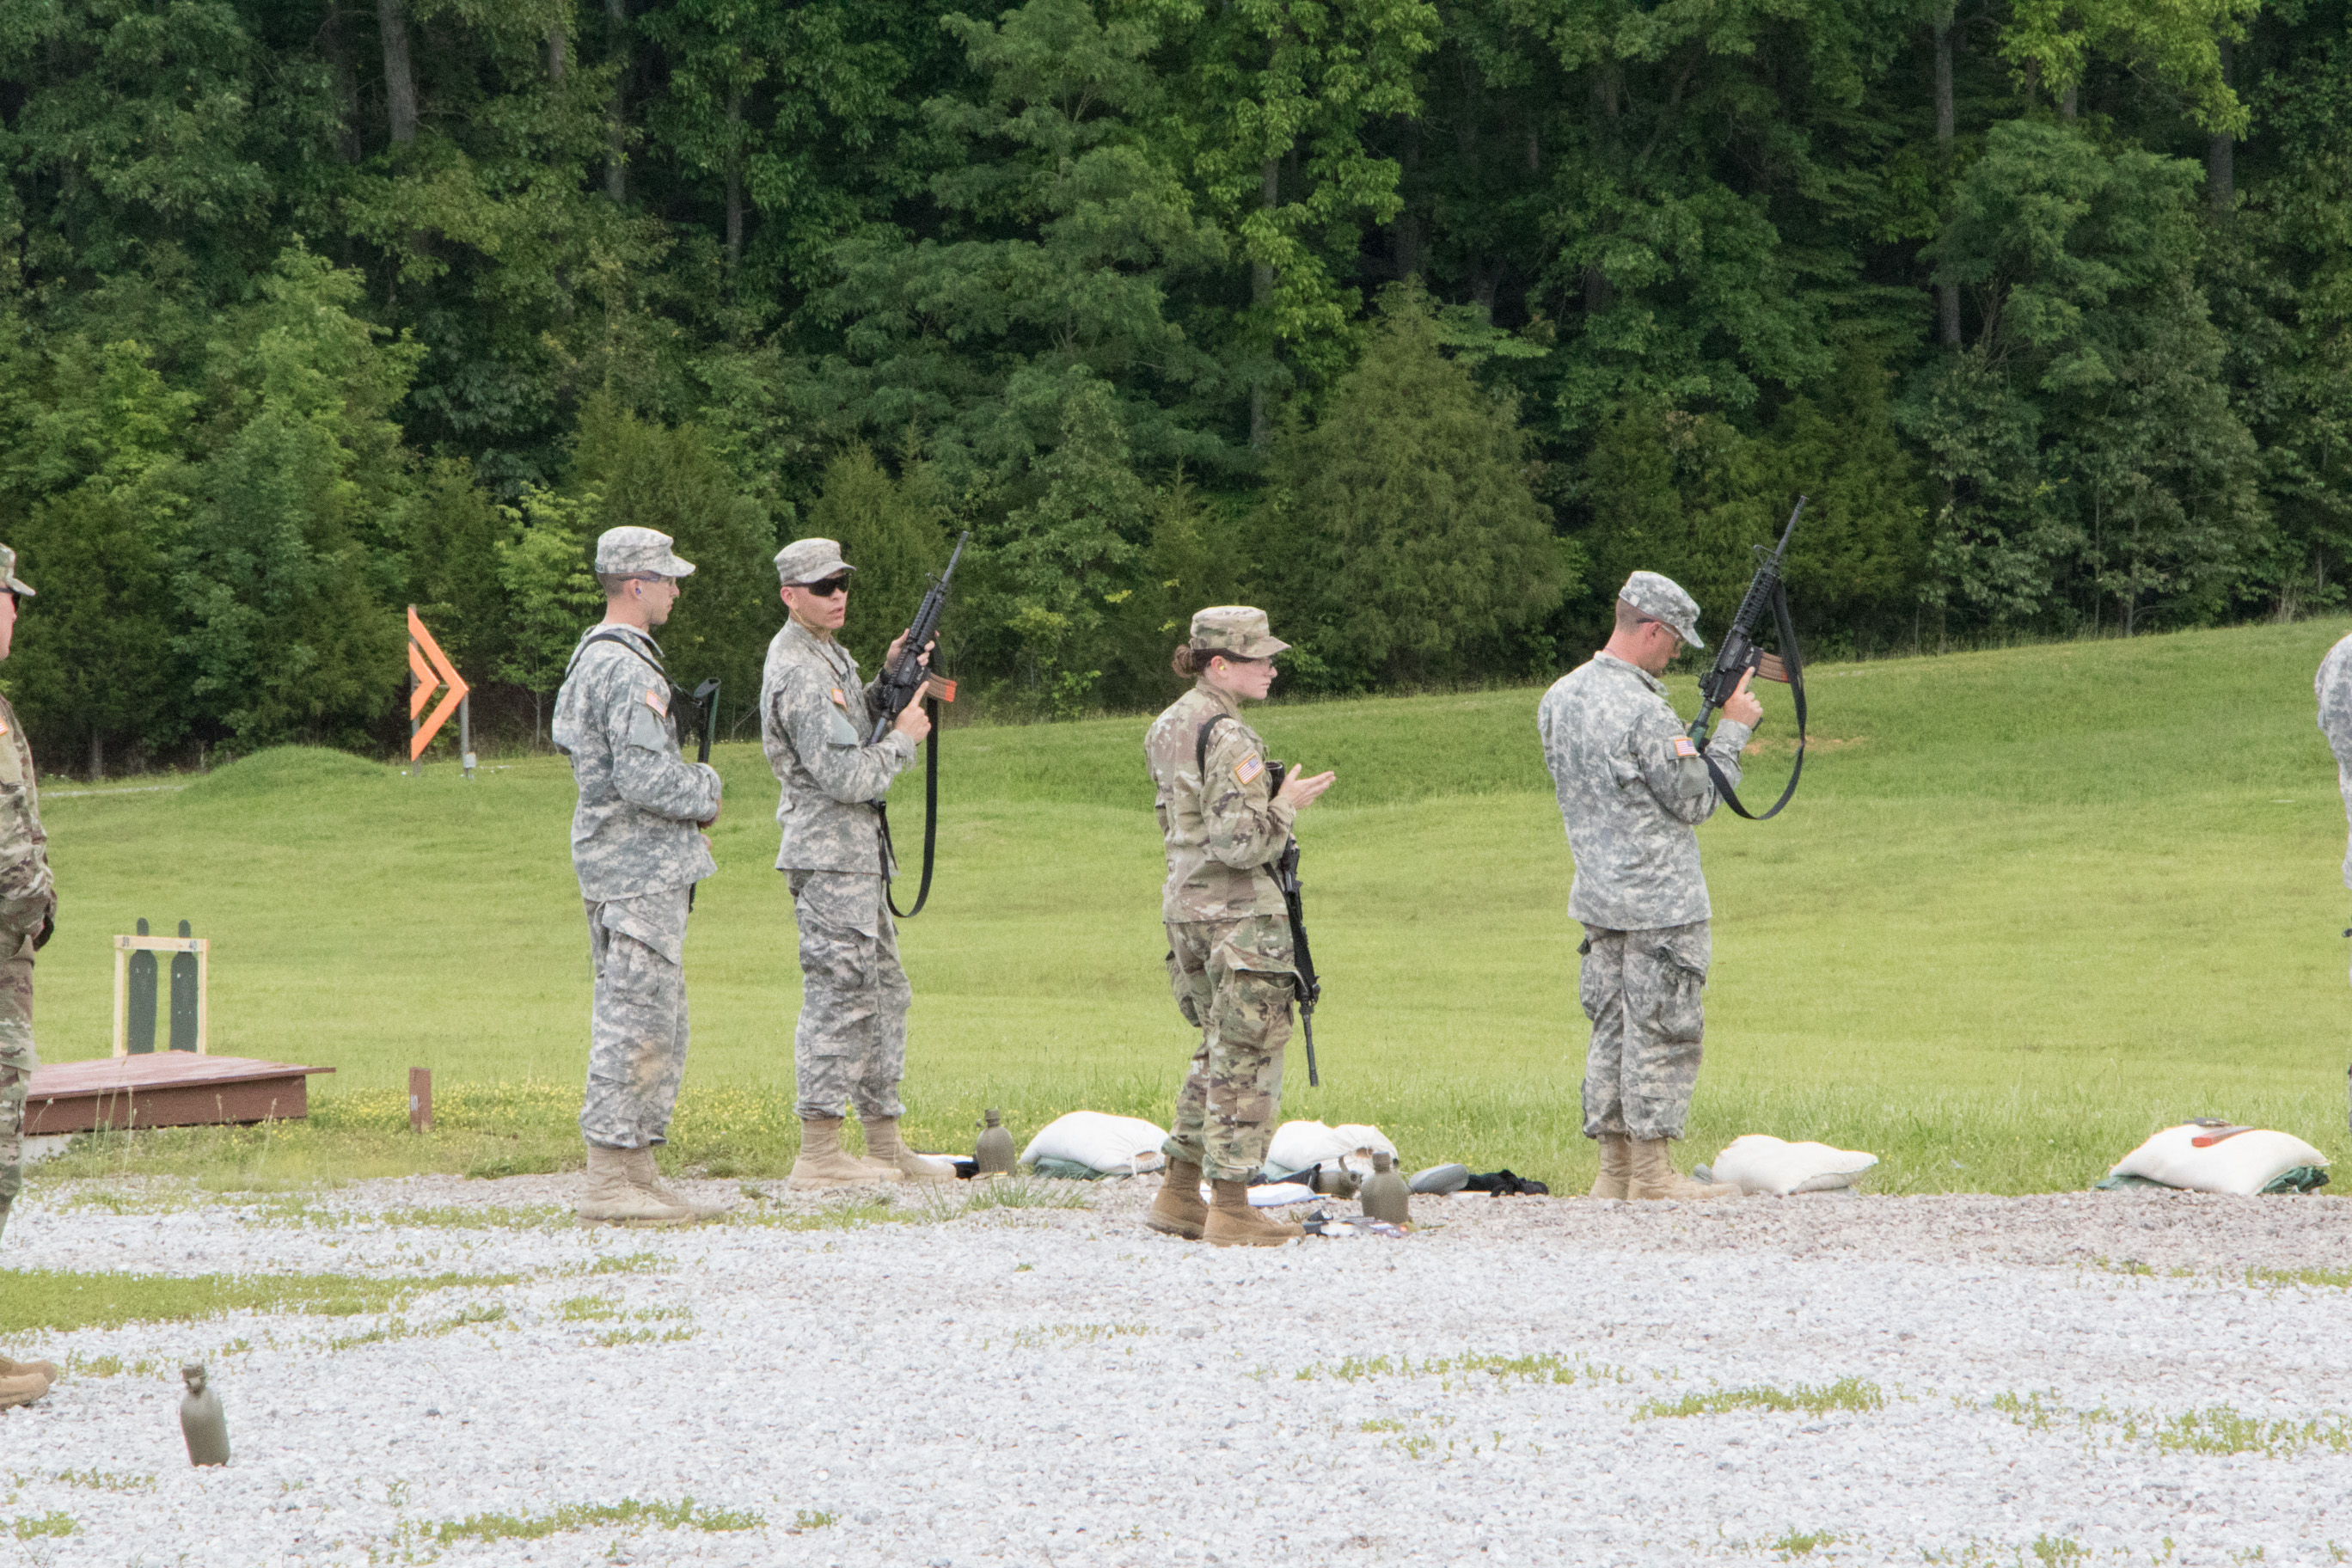 Zeroing and down range feedback offer new challenges